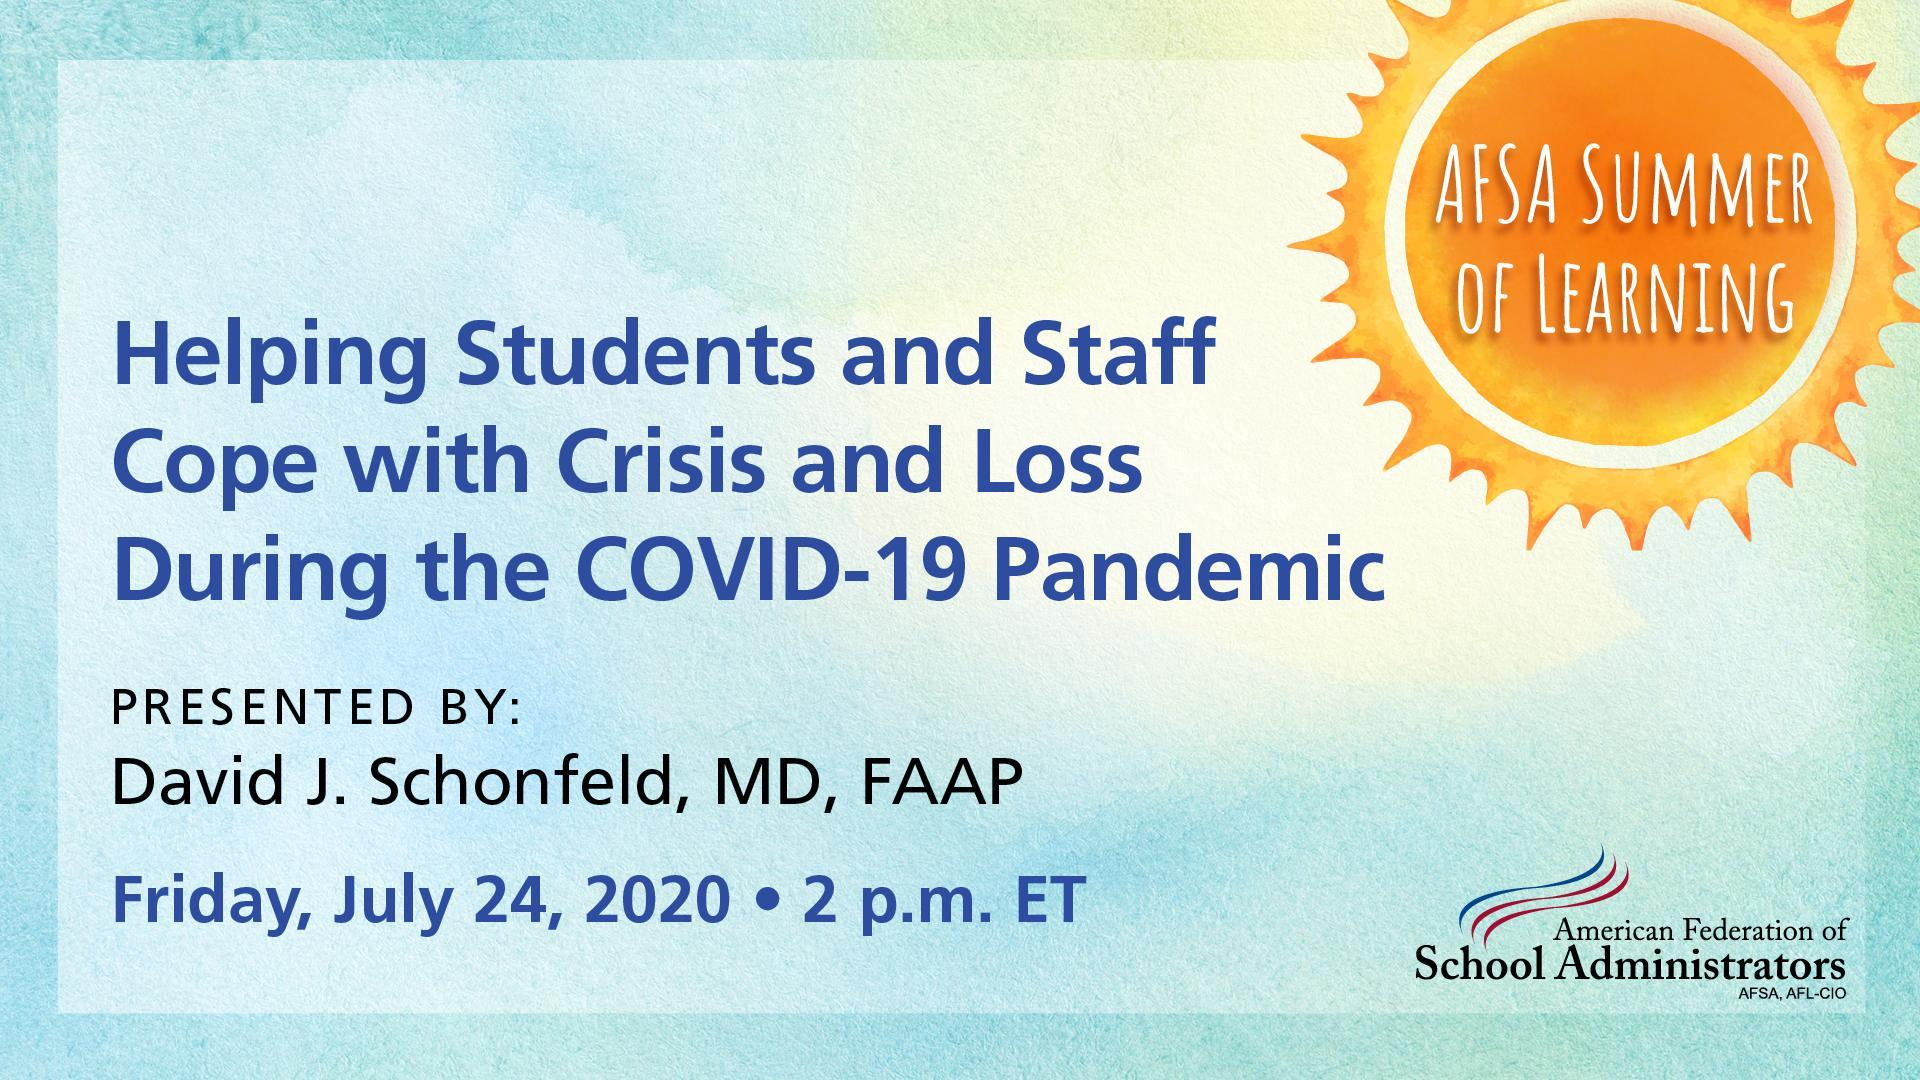 Helping Students and Staff Cope with Crisis and Loss During the COVID-19 Pandemic